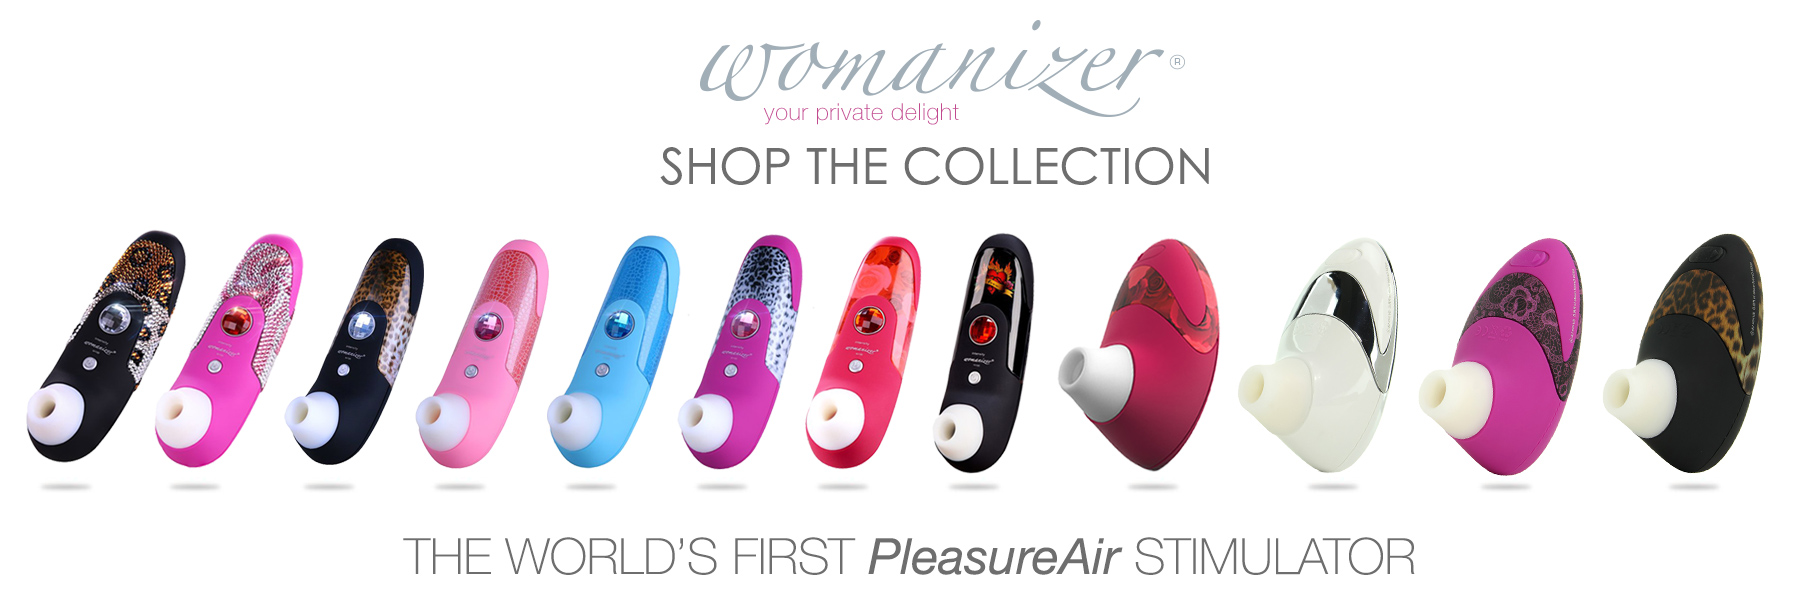 Bed Time Toys, Womanizer, Canada